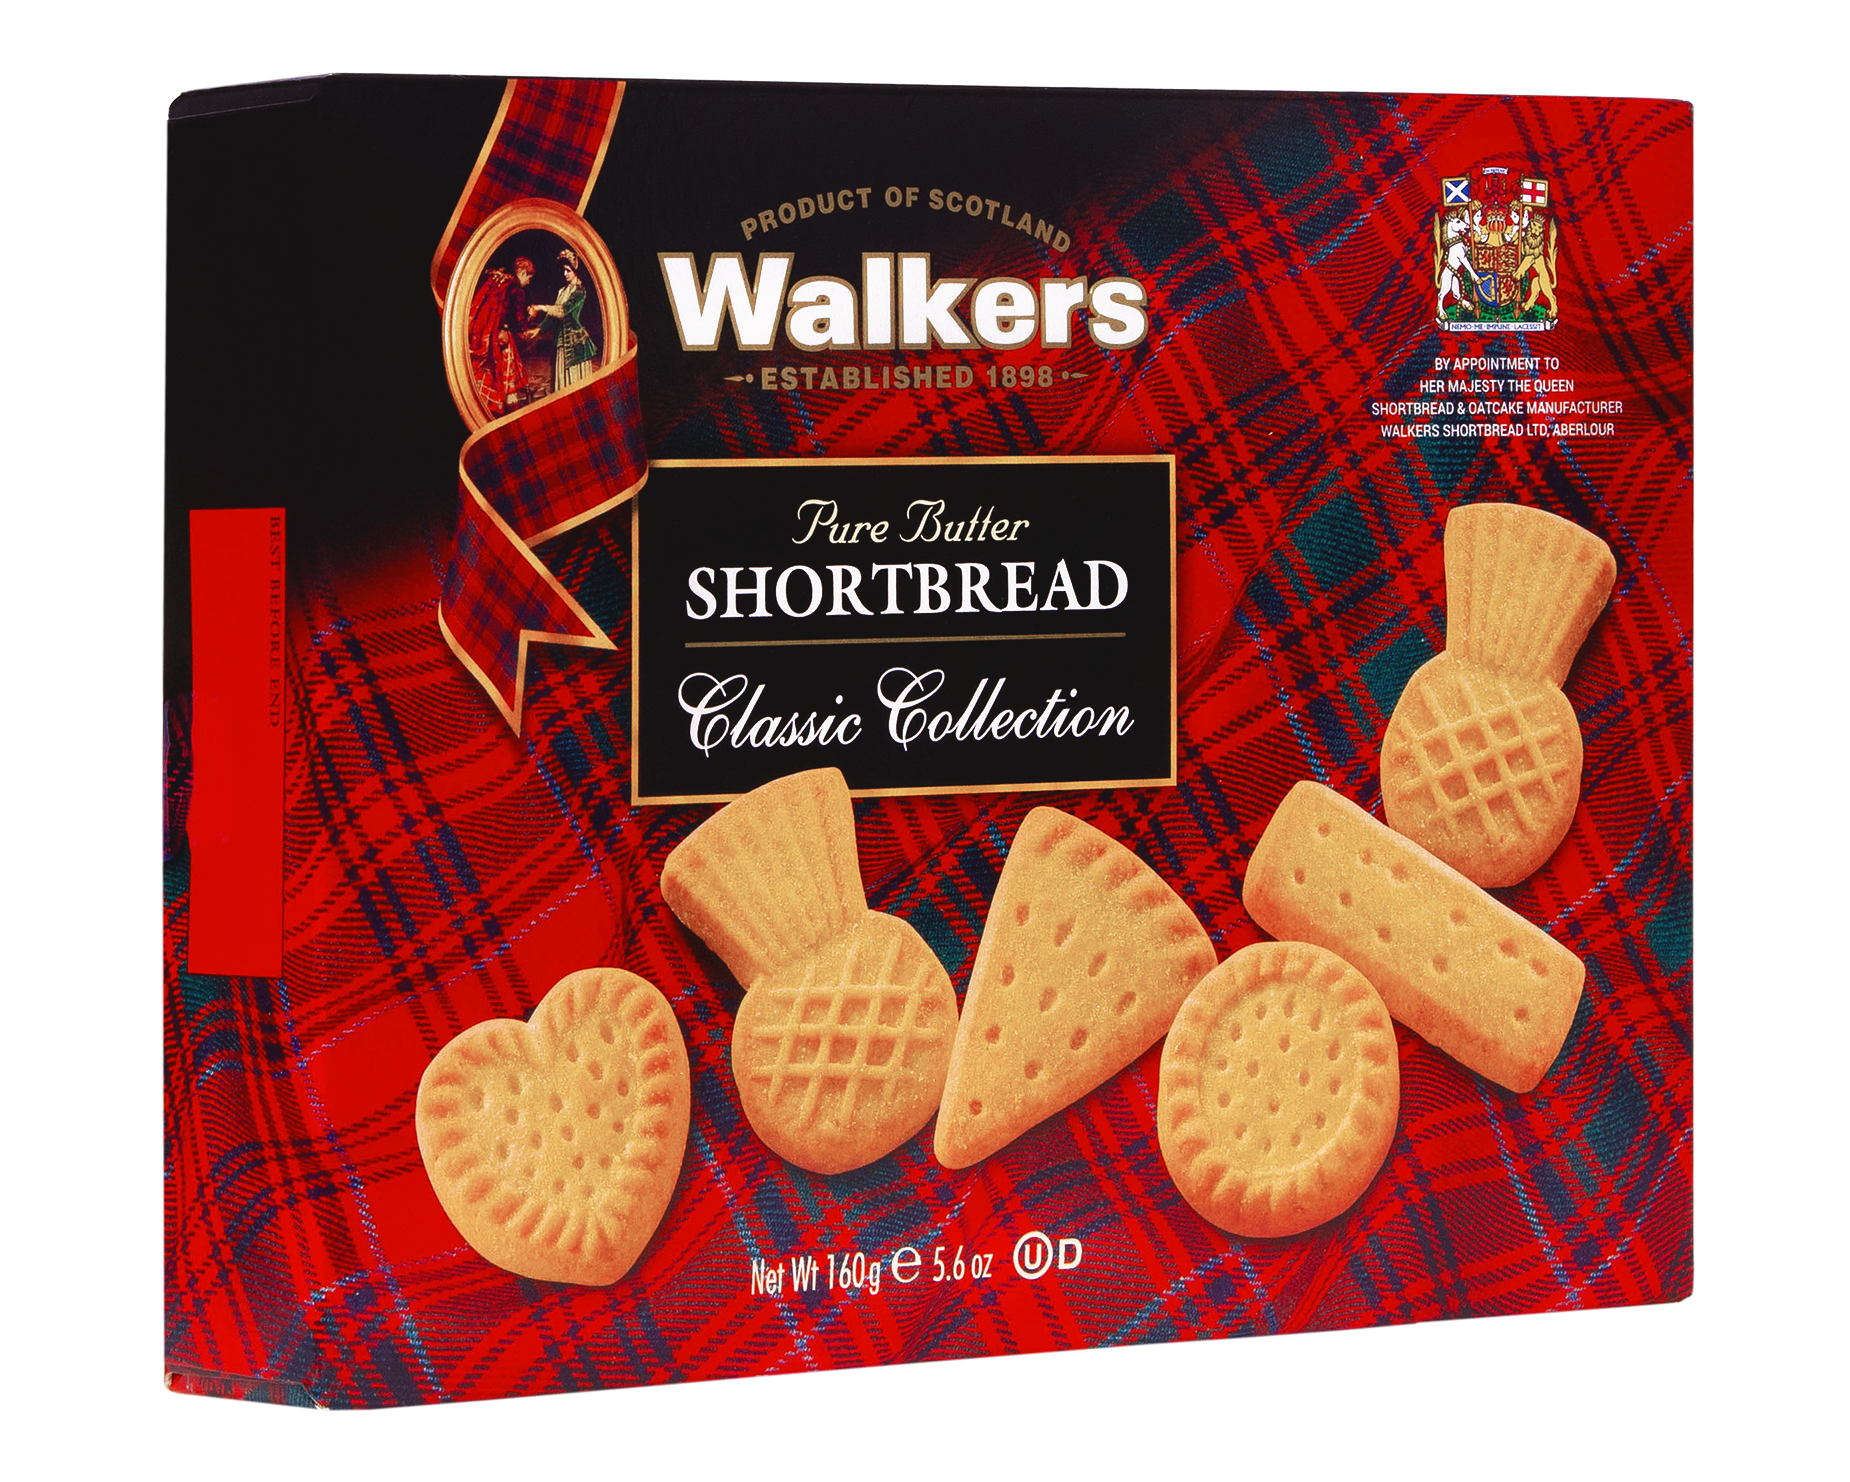 Shortbread Classic Collection